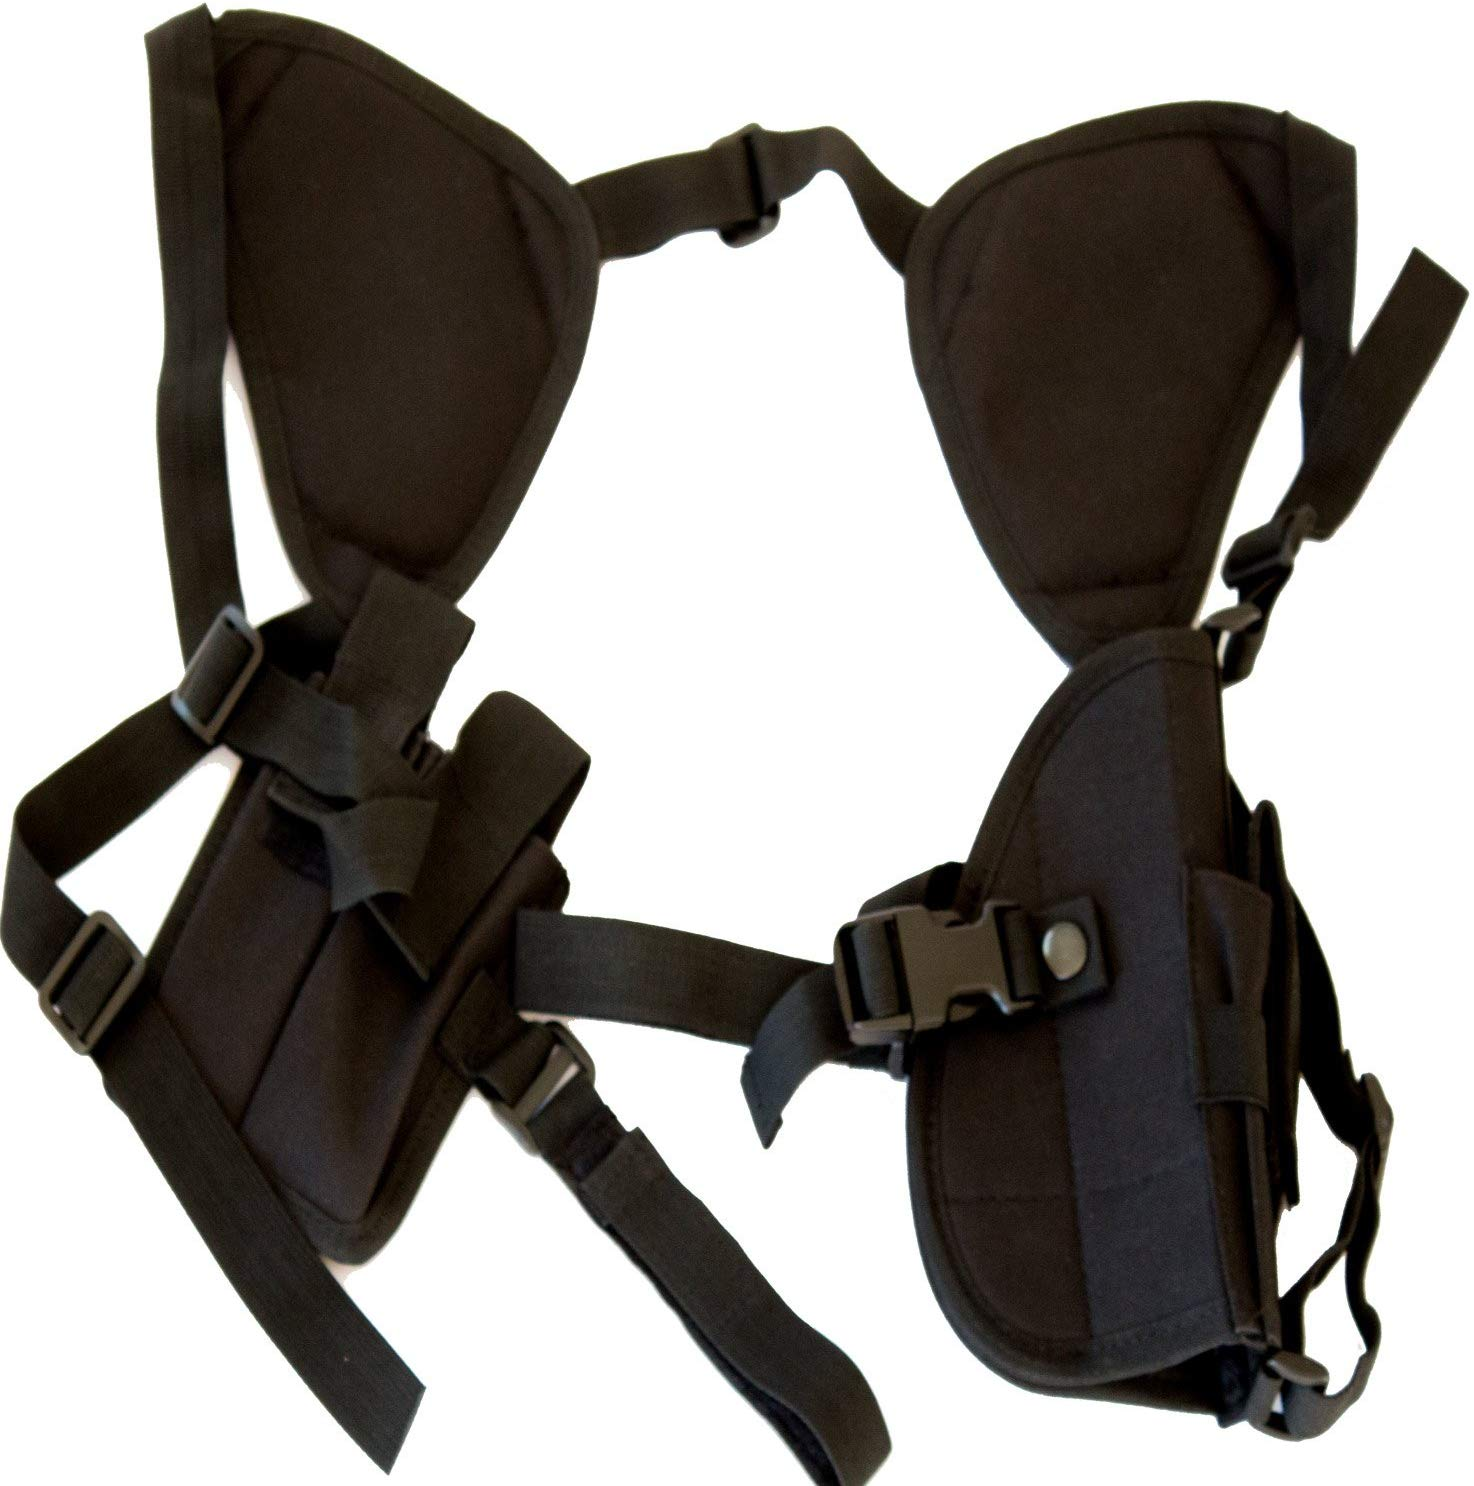 Under Control Tactical Concealed Carry Shoulder Holster